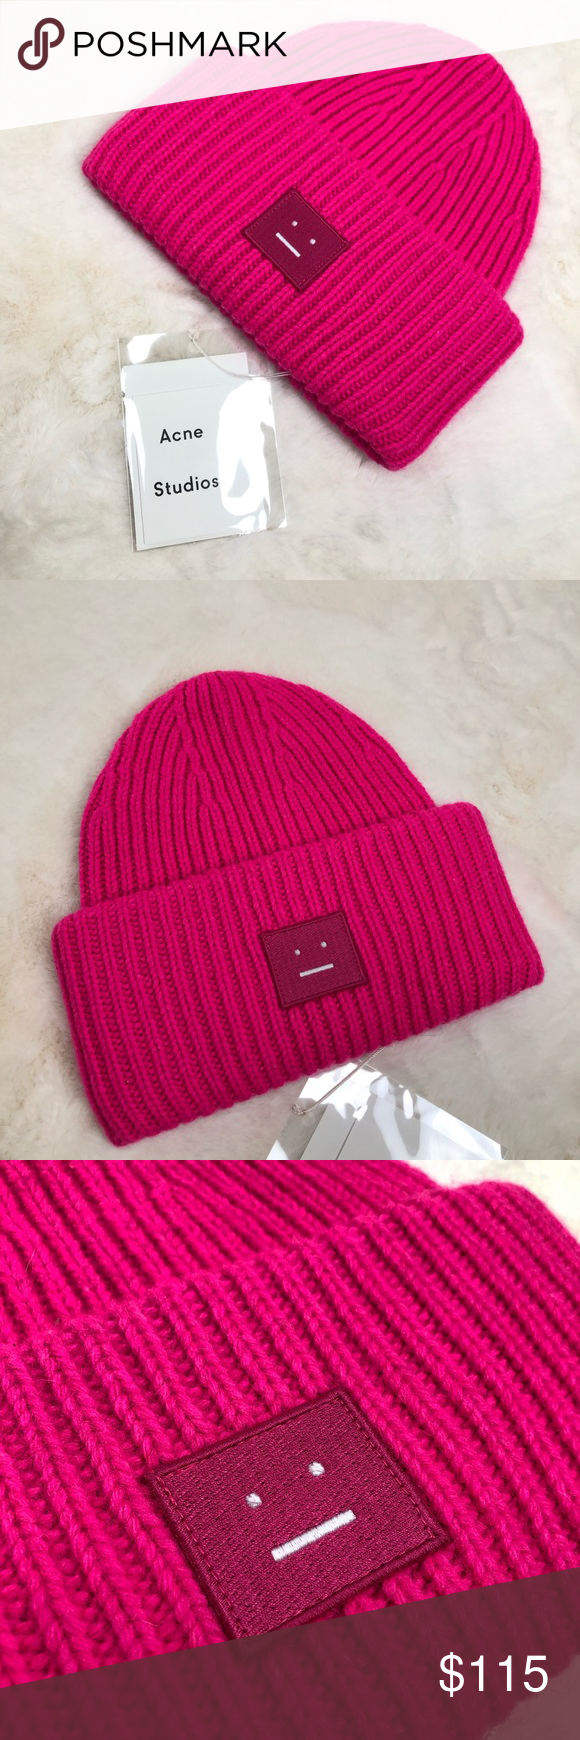 fa52cacd6 Acne Studios Hot Pink Oversized Wool Beanie Brand new with tags Acne ...